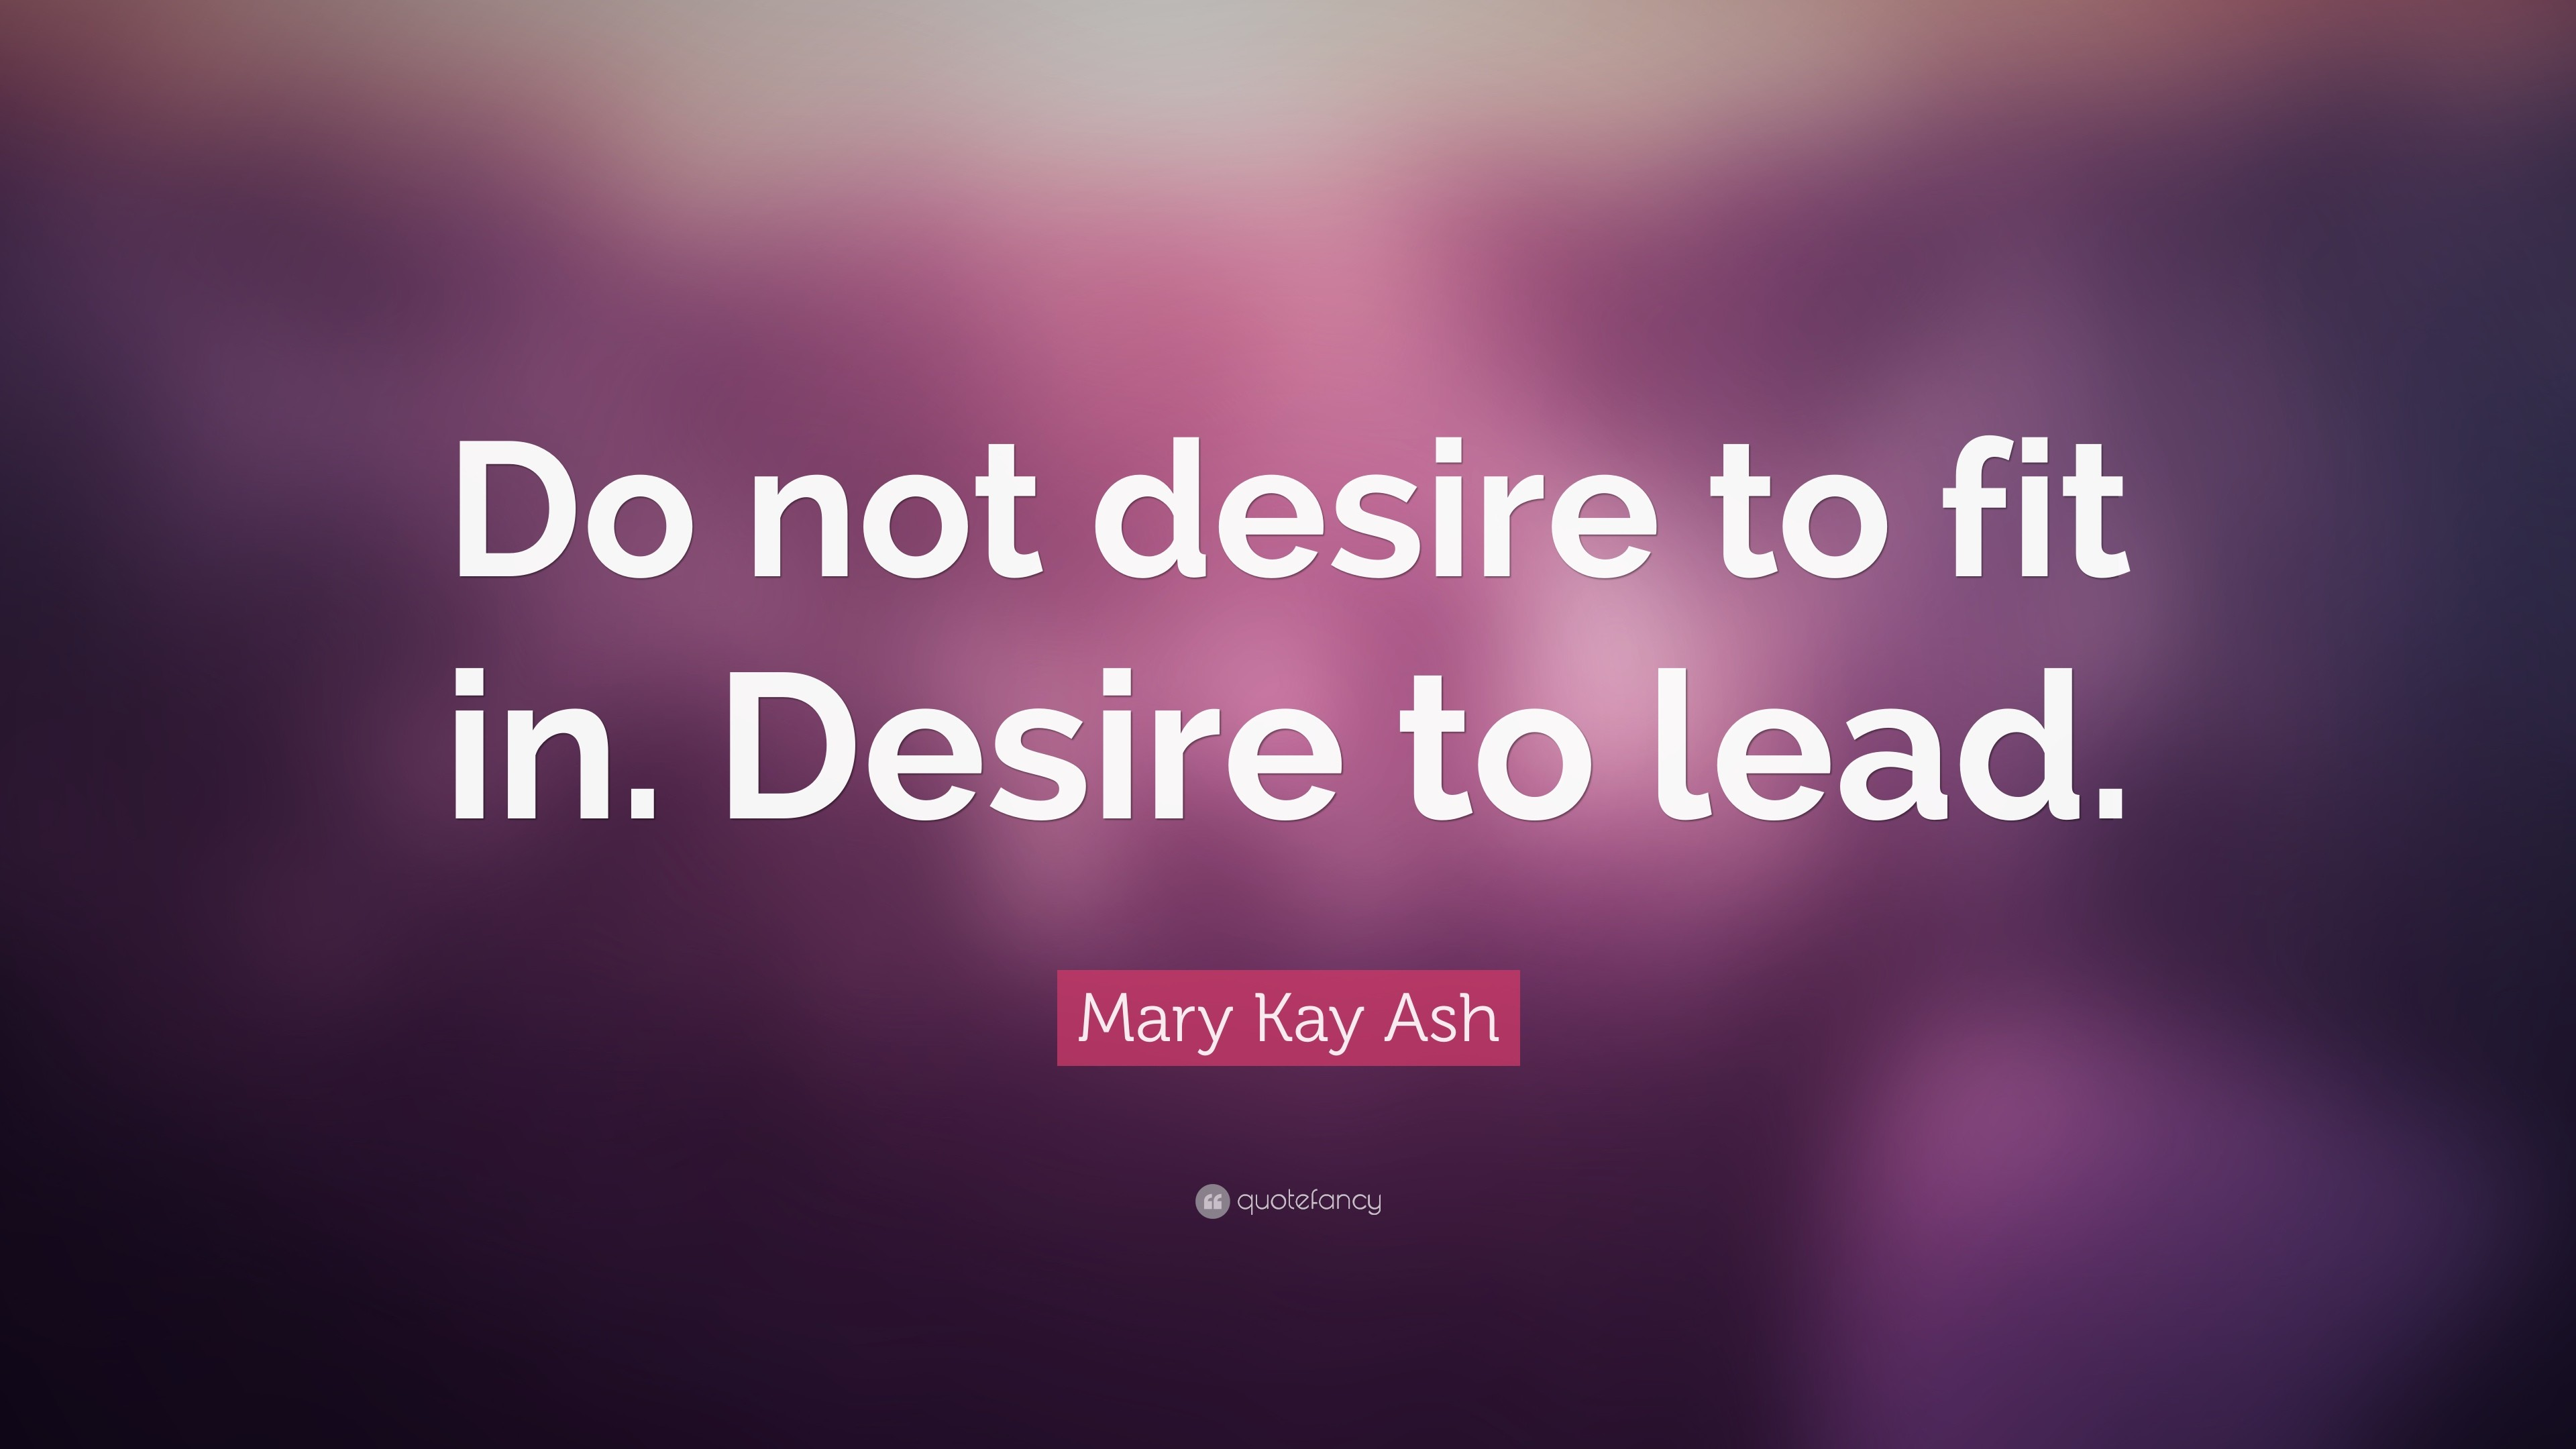 """Mary Kay Ash Quote: """"Do not desire to fit in. Desire to lead"""